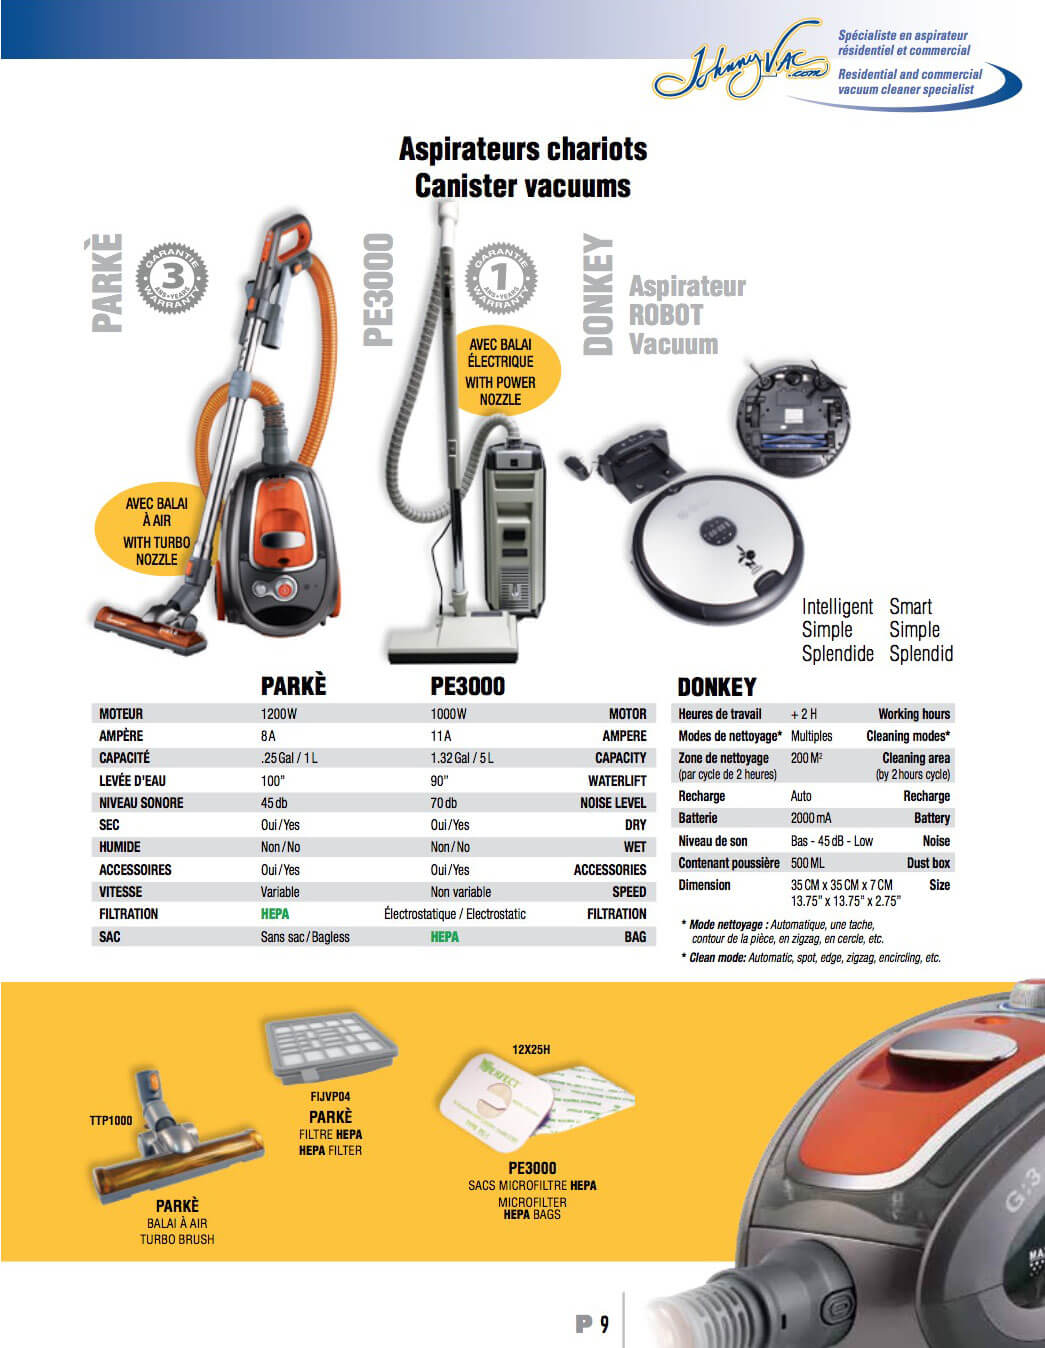 aspirateur johnny vac residentiel et commercial